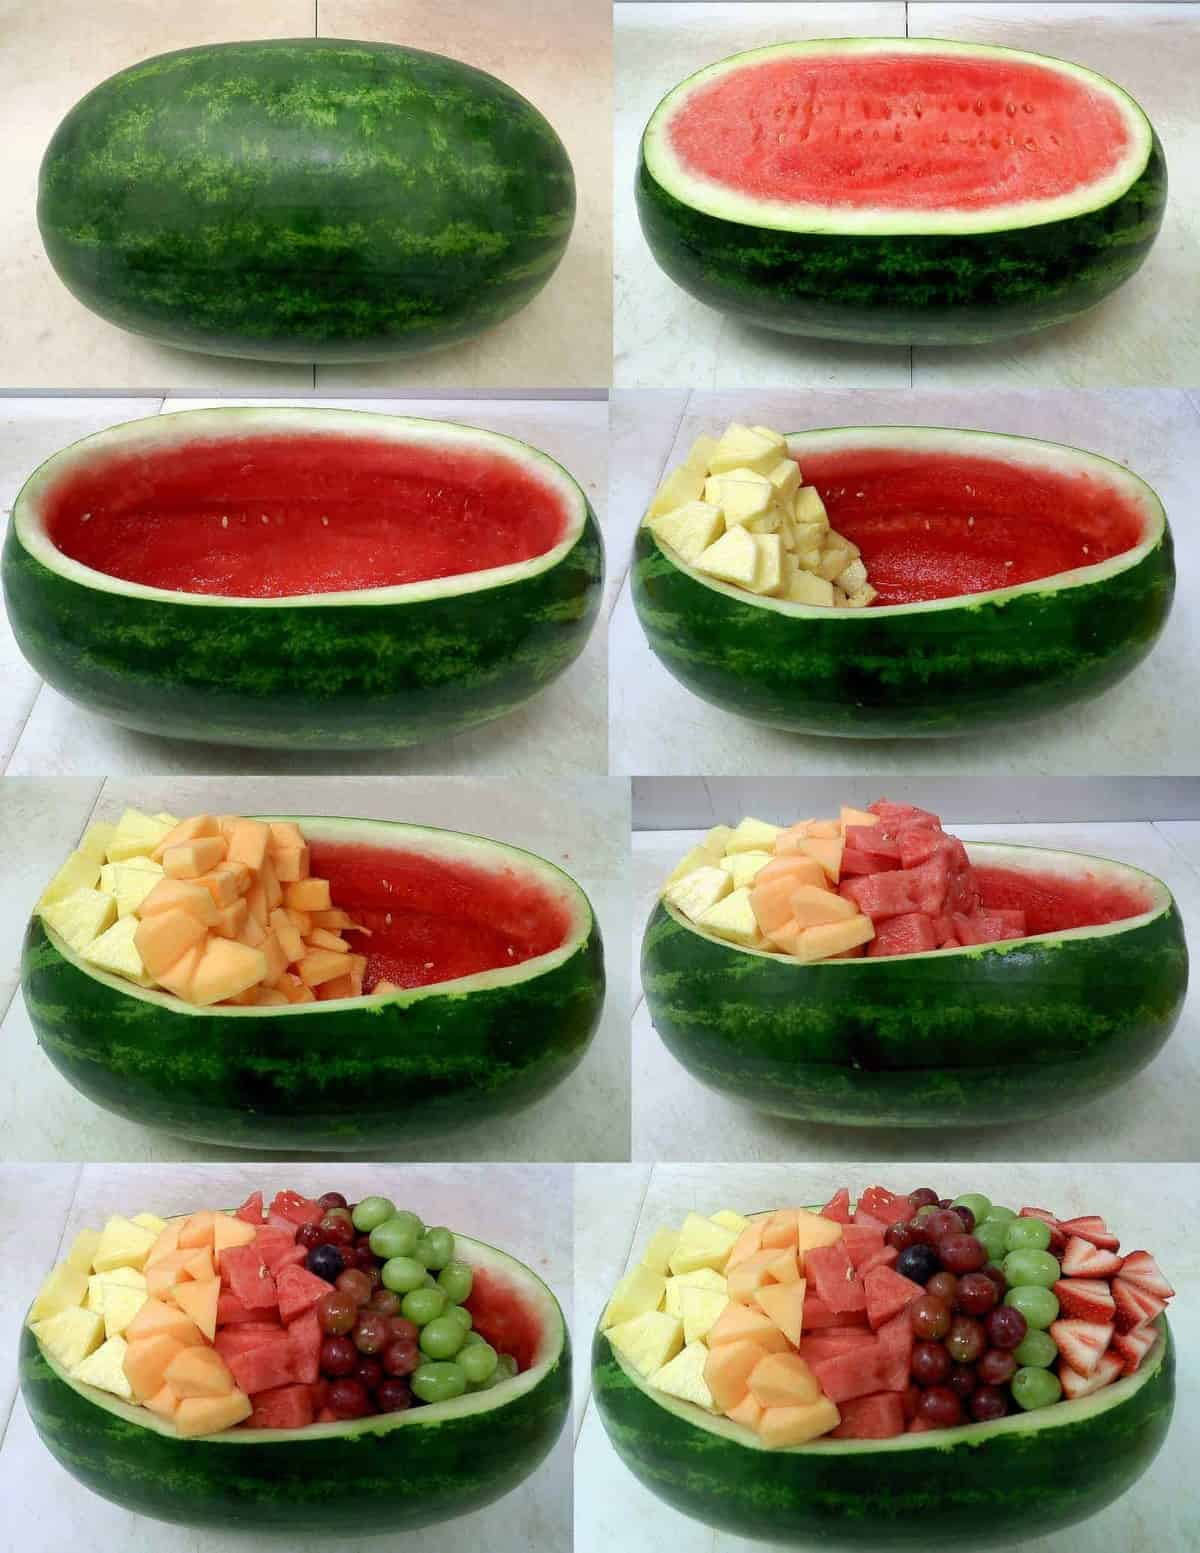 How to make a watermelon fruit bowl from Buzzfeed